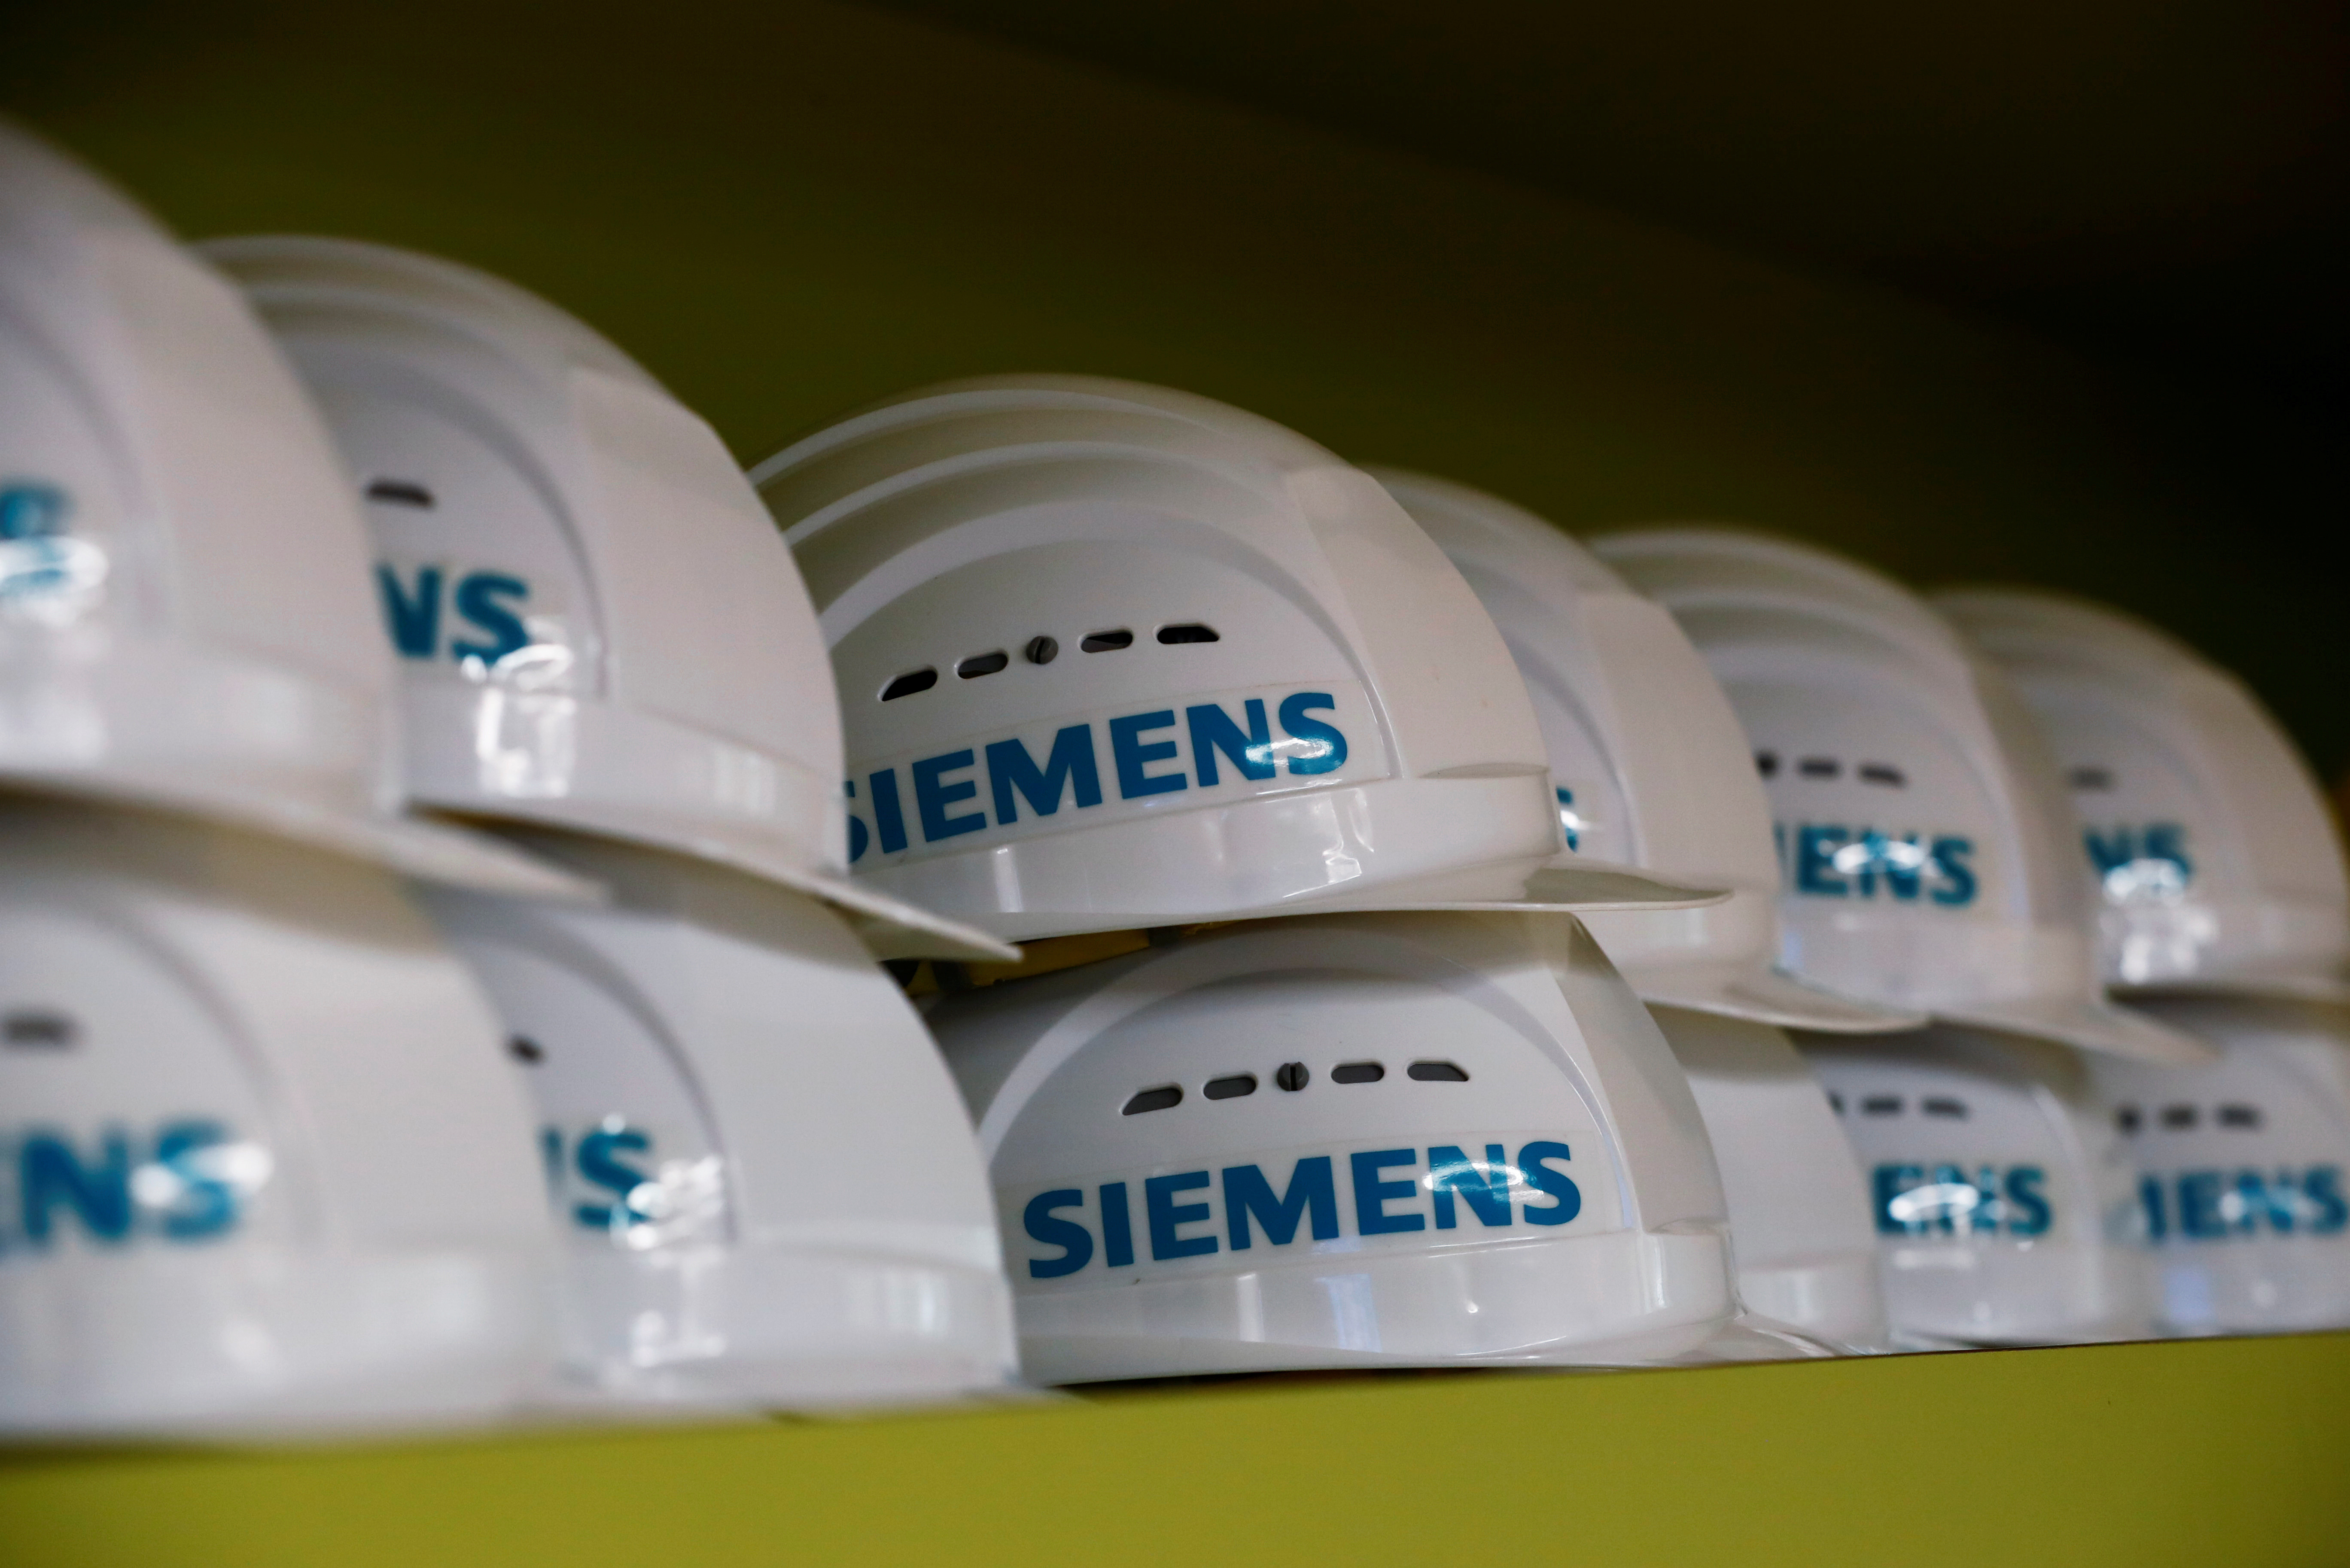 Safety helmets are seen at Siemens company's plant in Goerlitz, Germany, July 15, 2019. REUTERS/Hannibal Hanschke - RC194B4ADC60